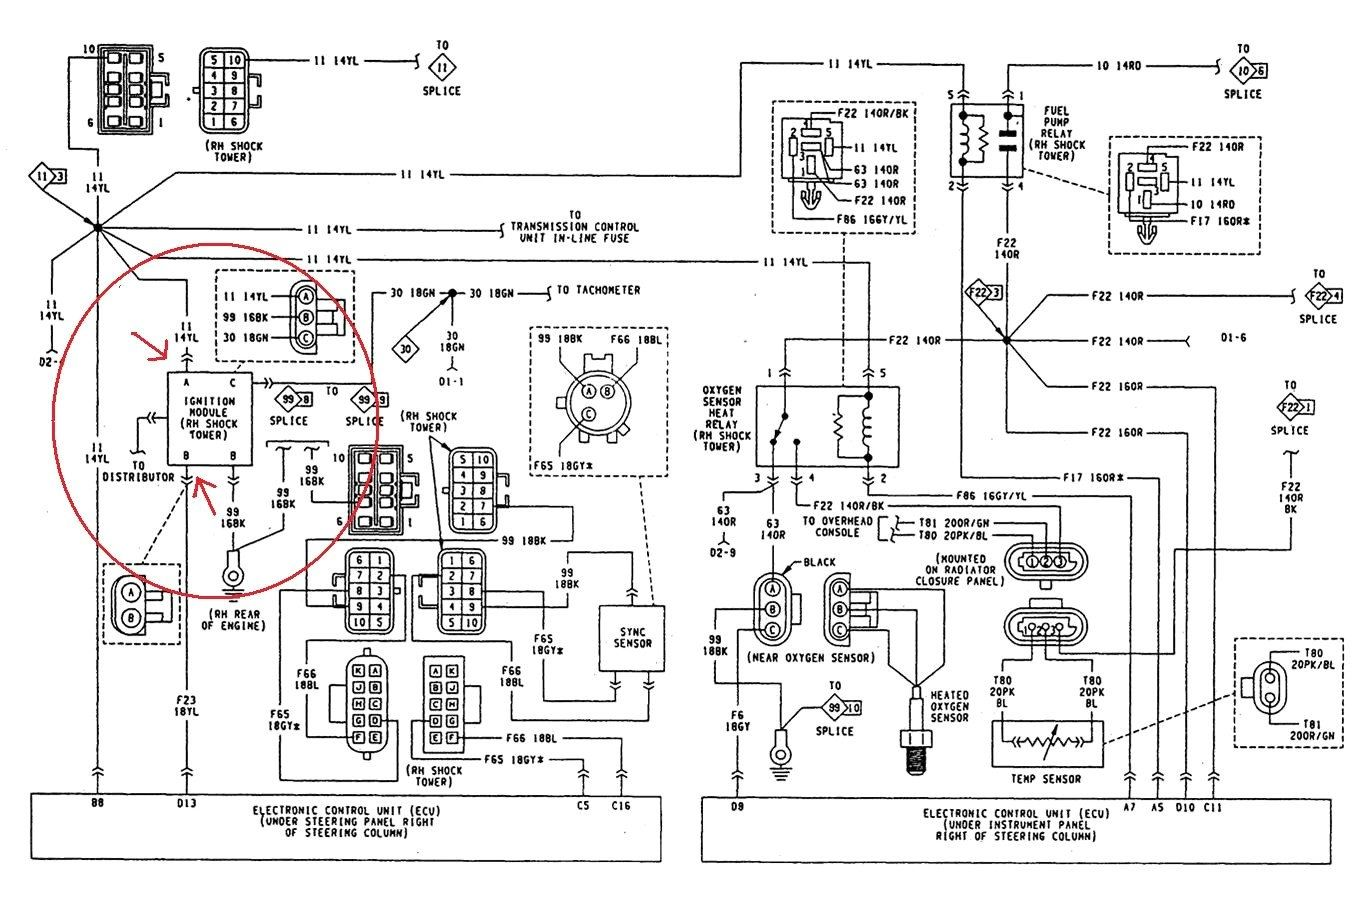 hight resolution of 1990 jeep yj vacuum diagram 1990 jeep wrangler 4 2 vacuum diagram within 1990 jeep wrangler wiring